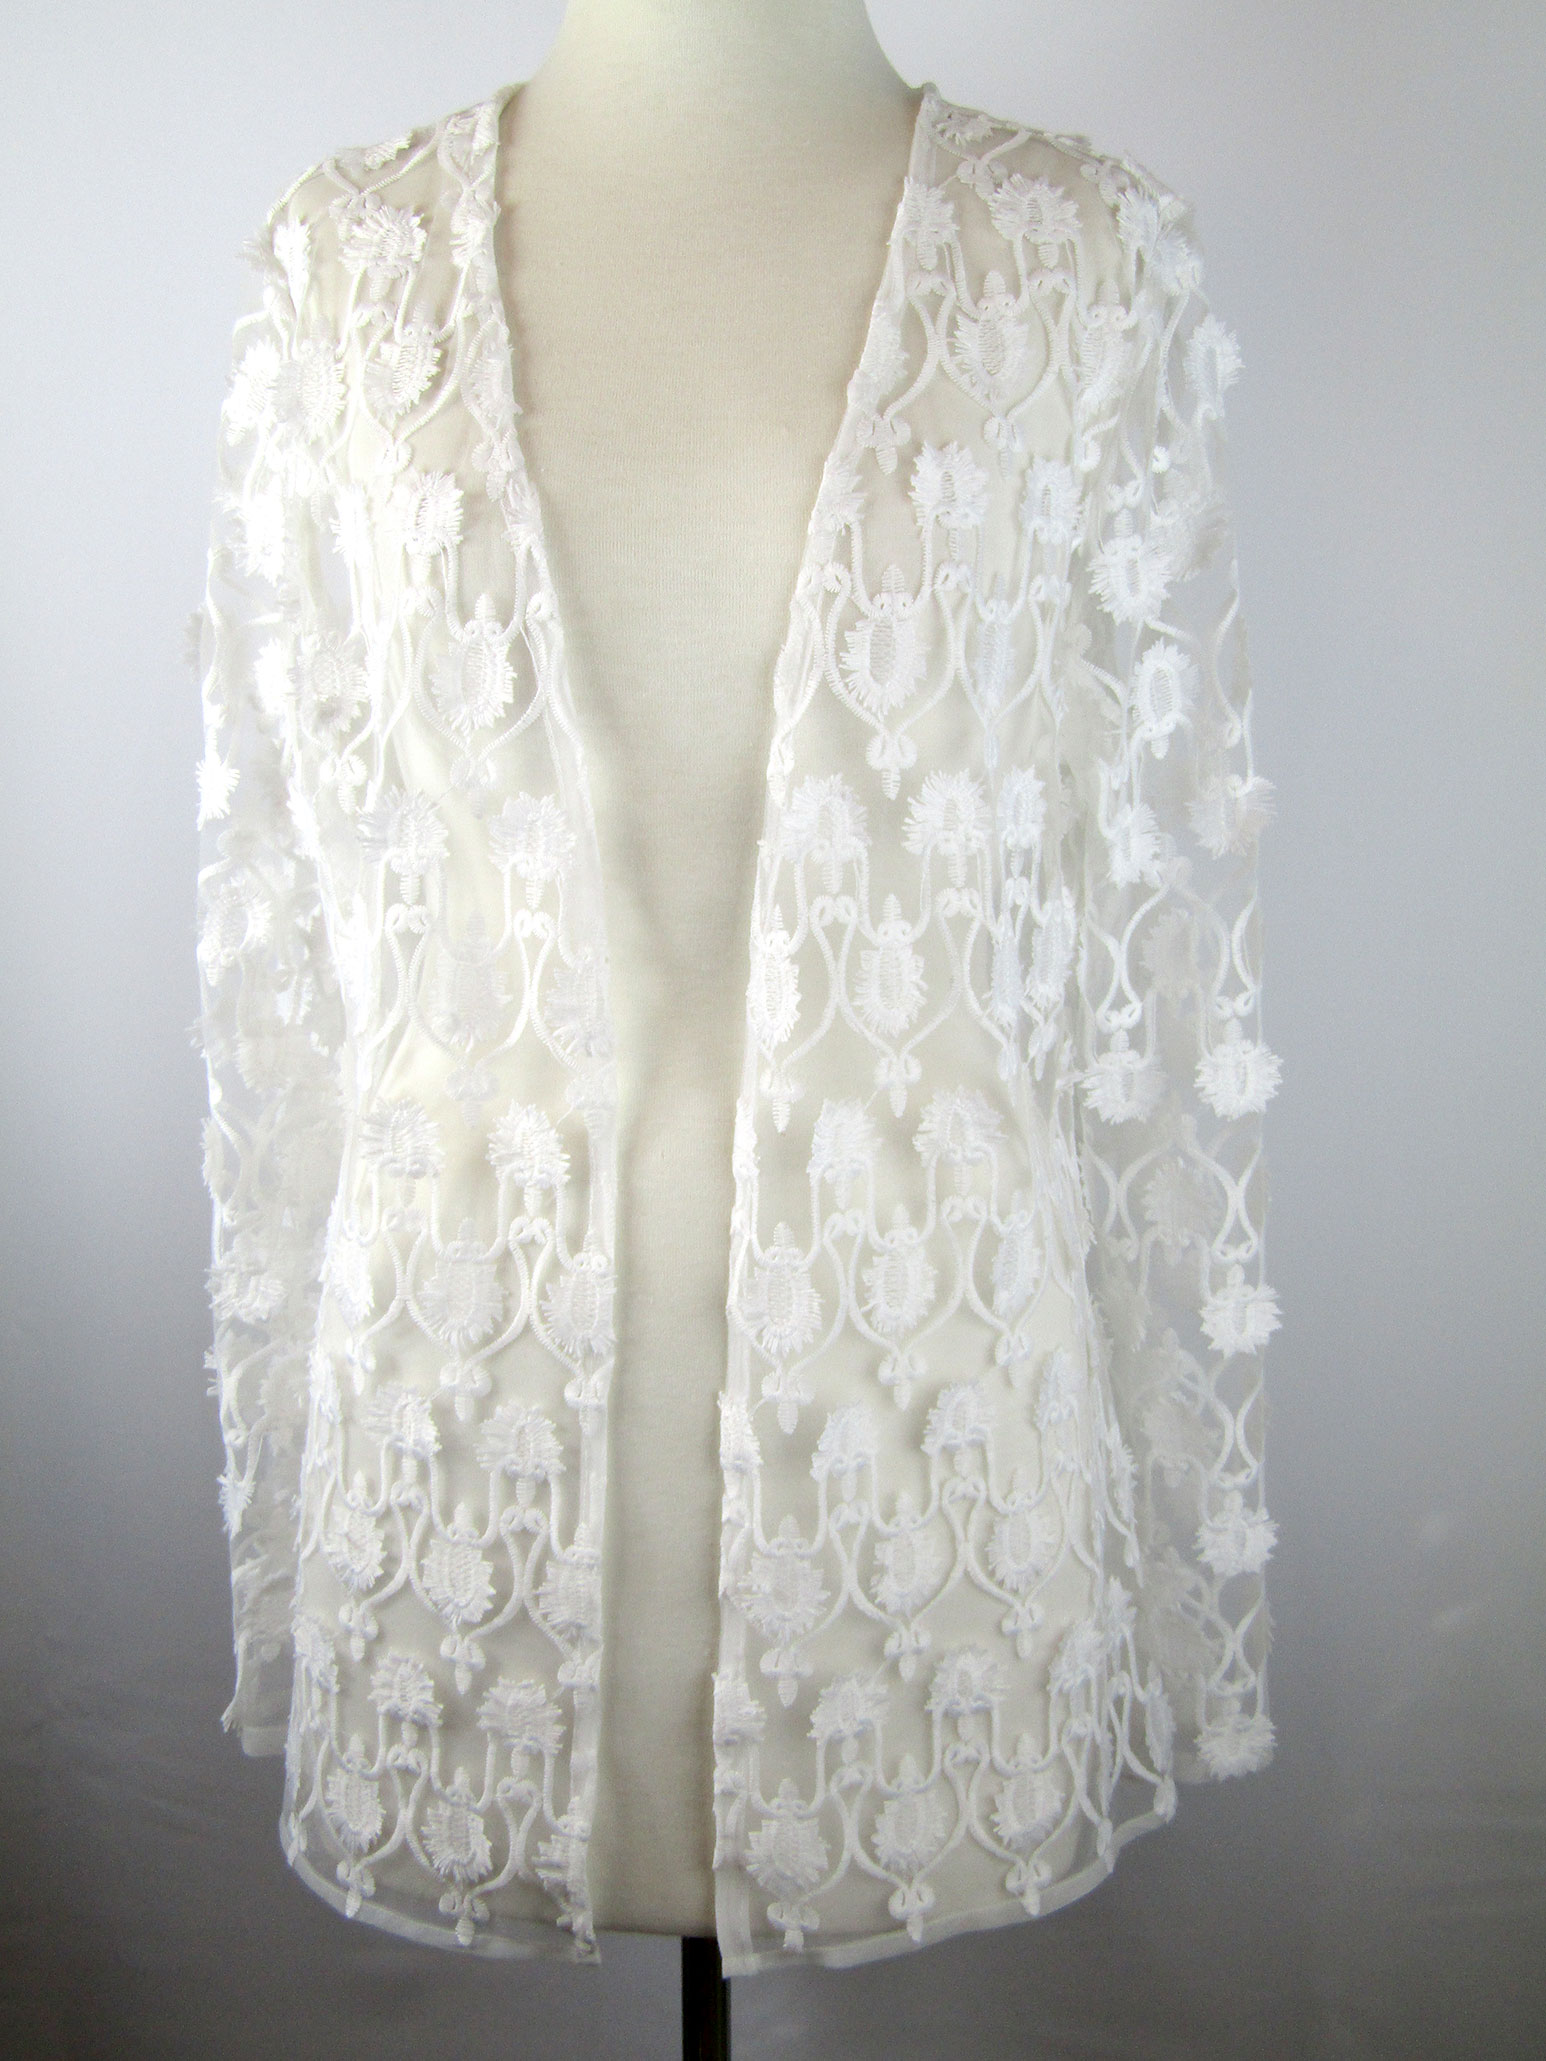 74247d7a7ff99 Sheer white embroidered jacket